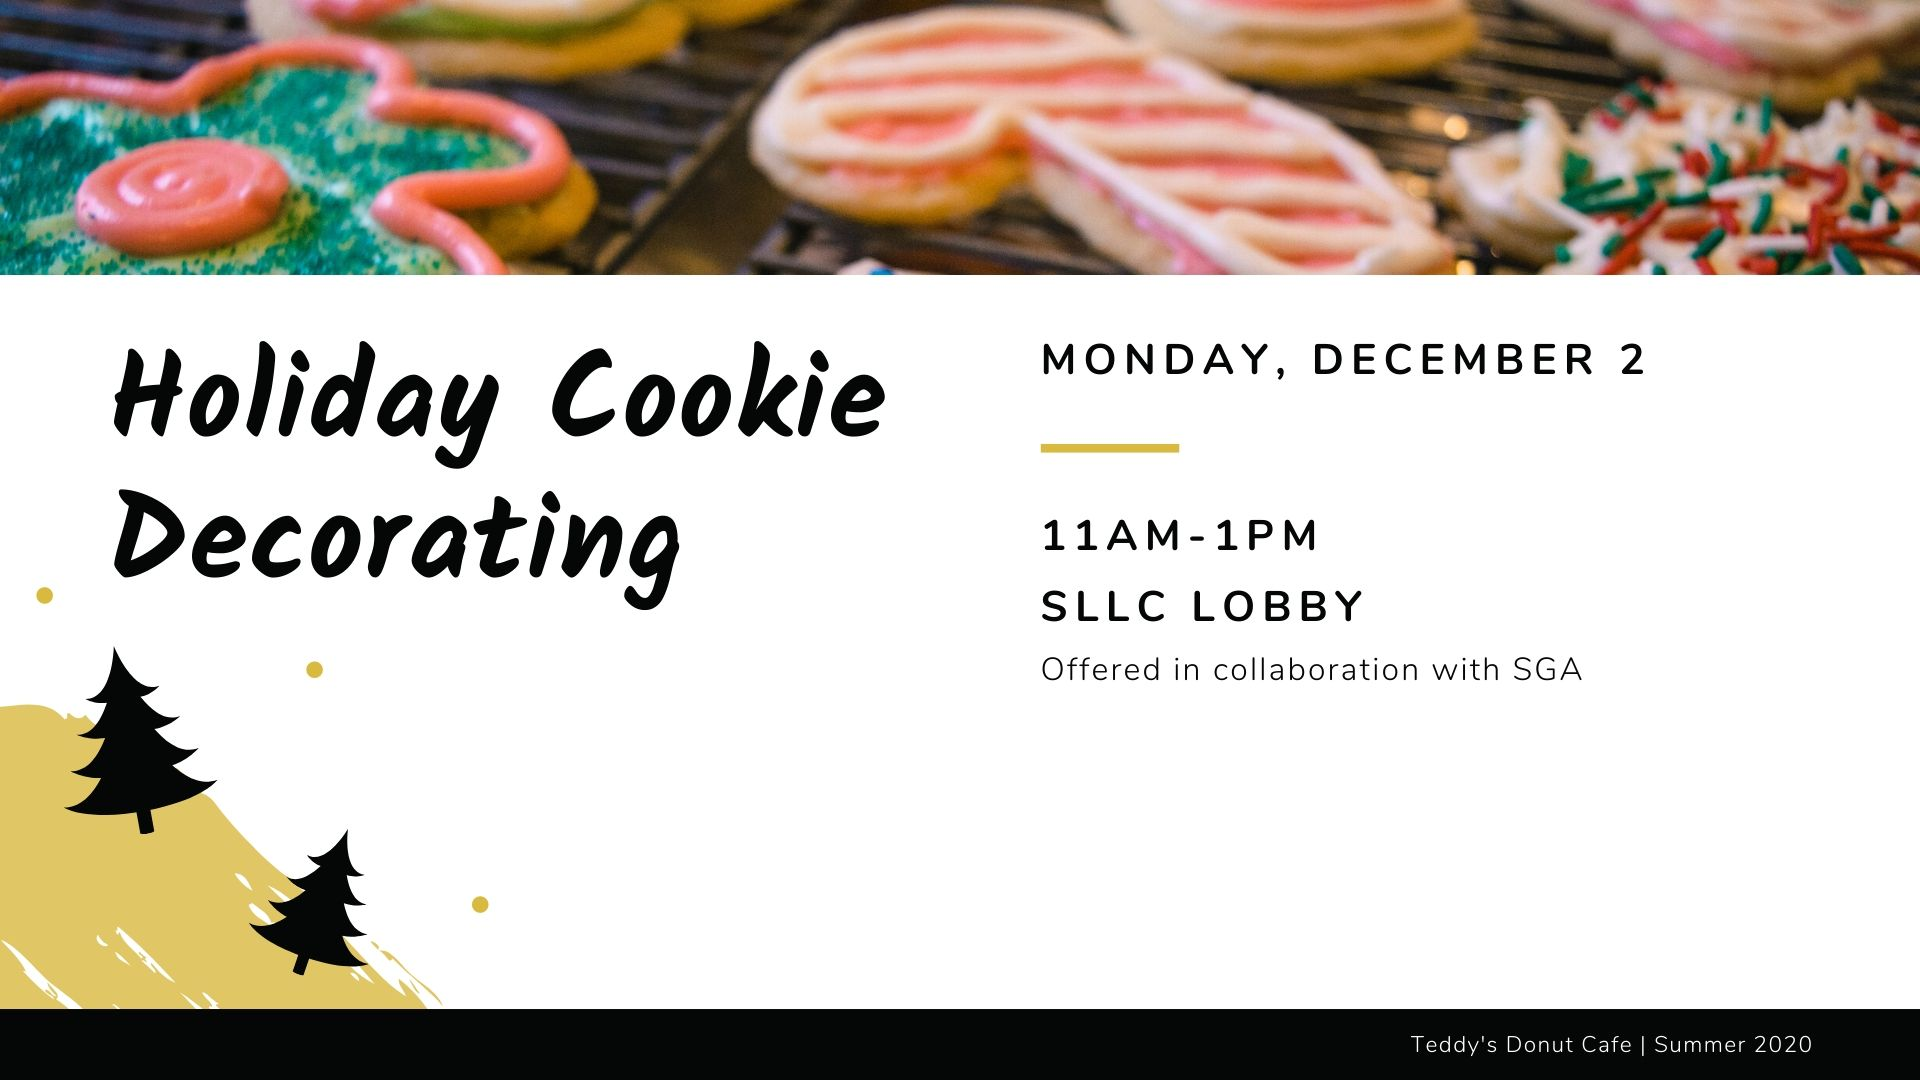 Holiday Cookie Decorating: Monday, December 2, 11AM-1PM, SLLC Lobby